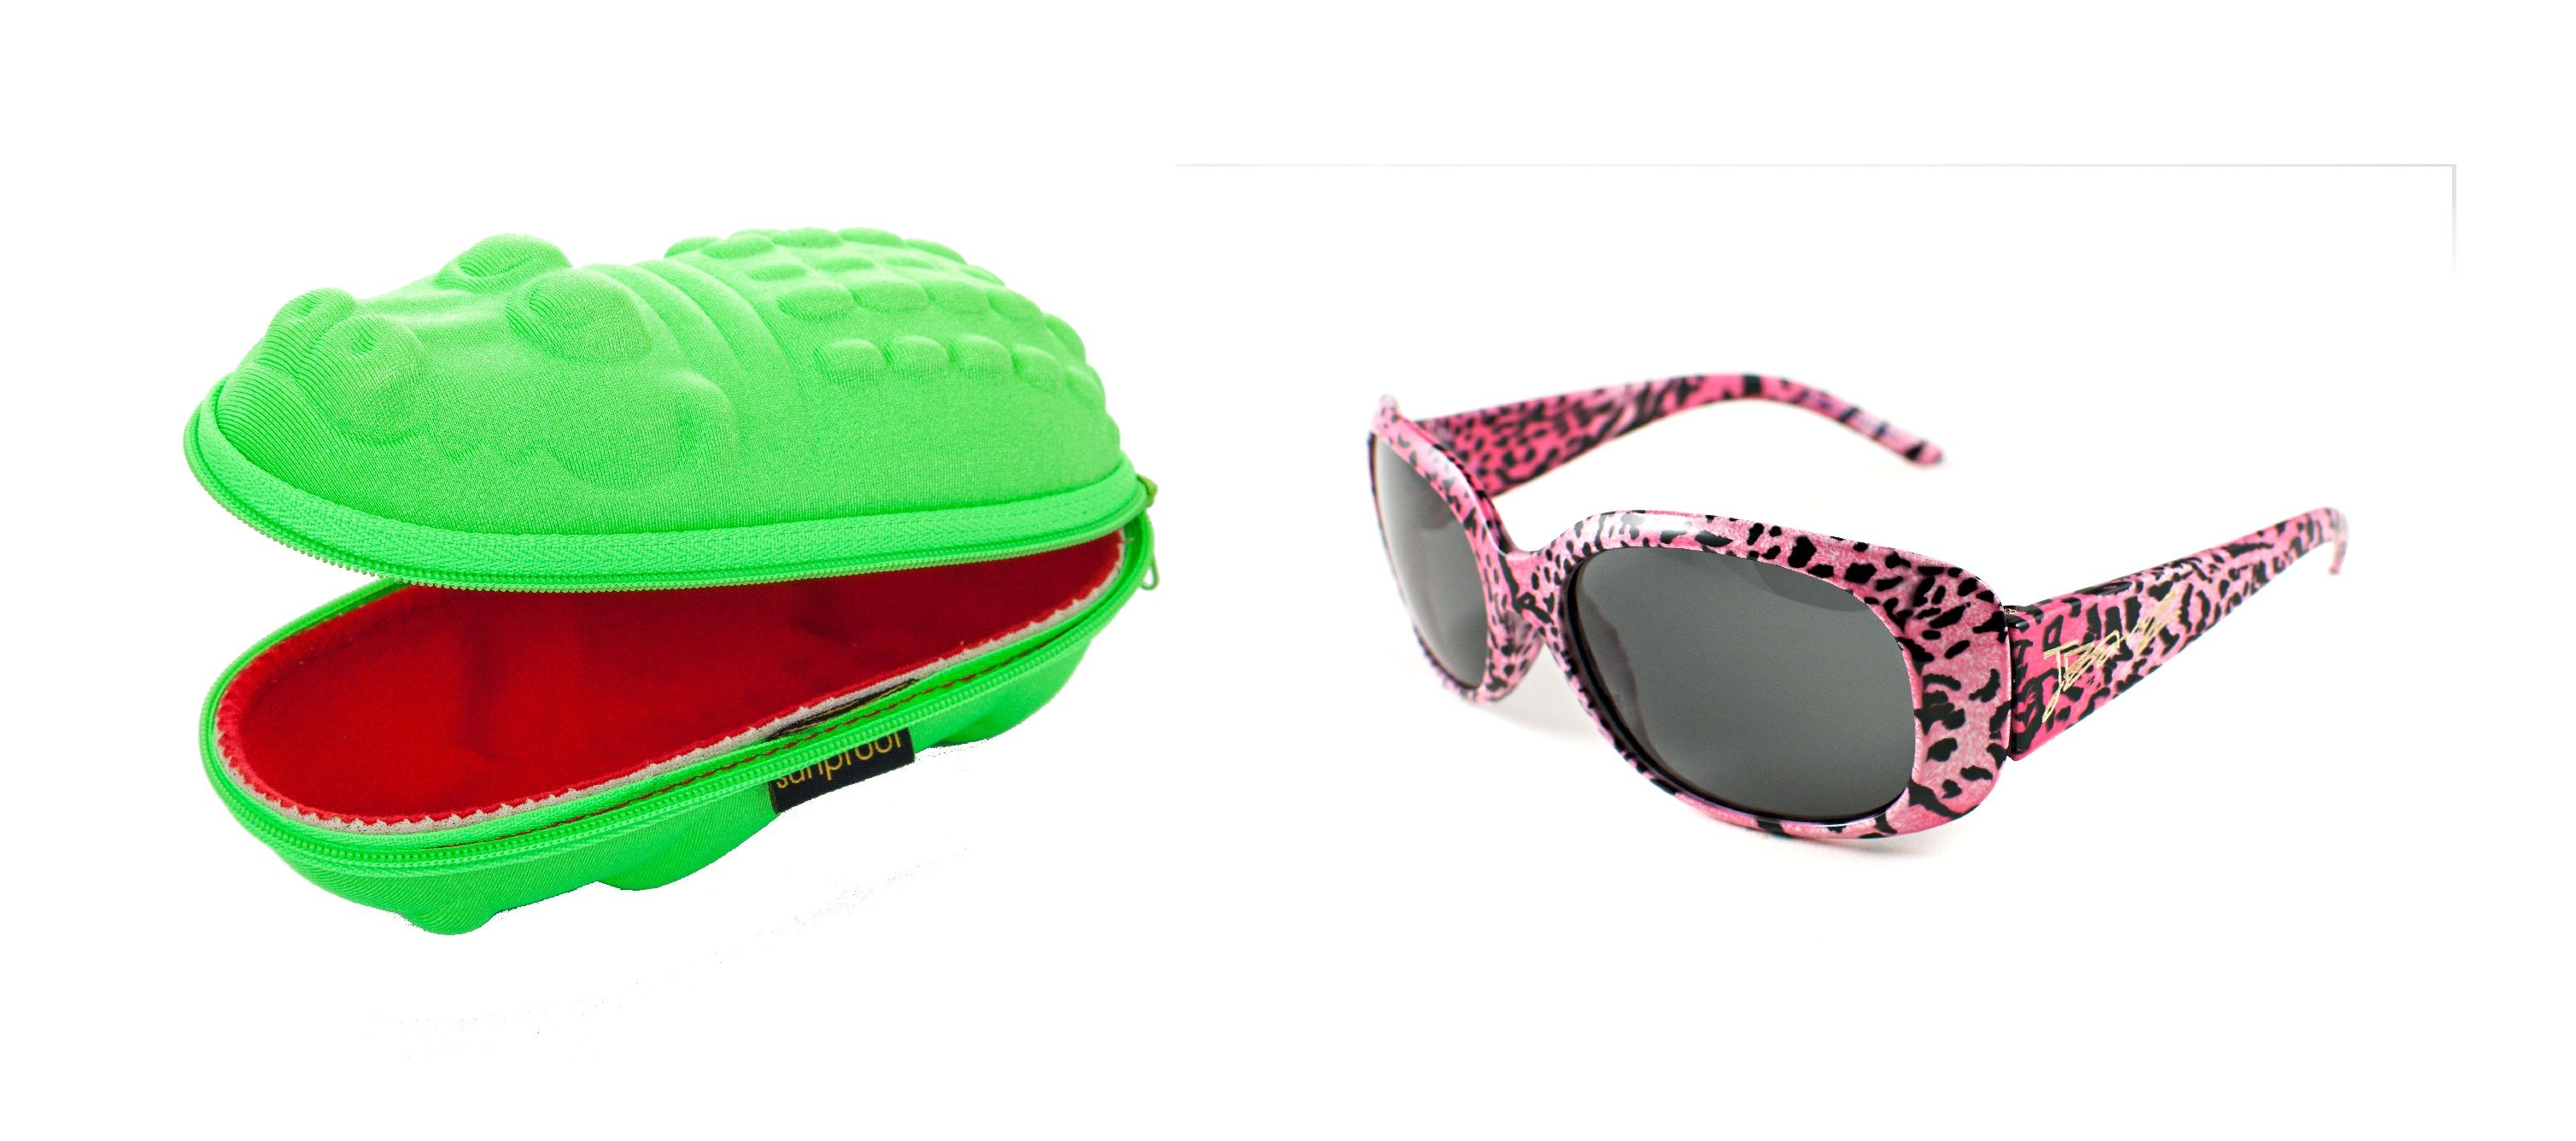 b304b4812076f1 Girls Gift set J Banz Pink Leopard Sunglasses and Green Crocodile  Sunglasses Case, suitable for ages 4 - 10 years